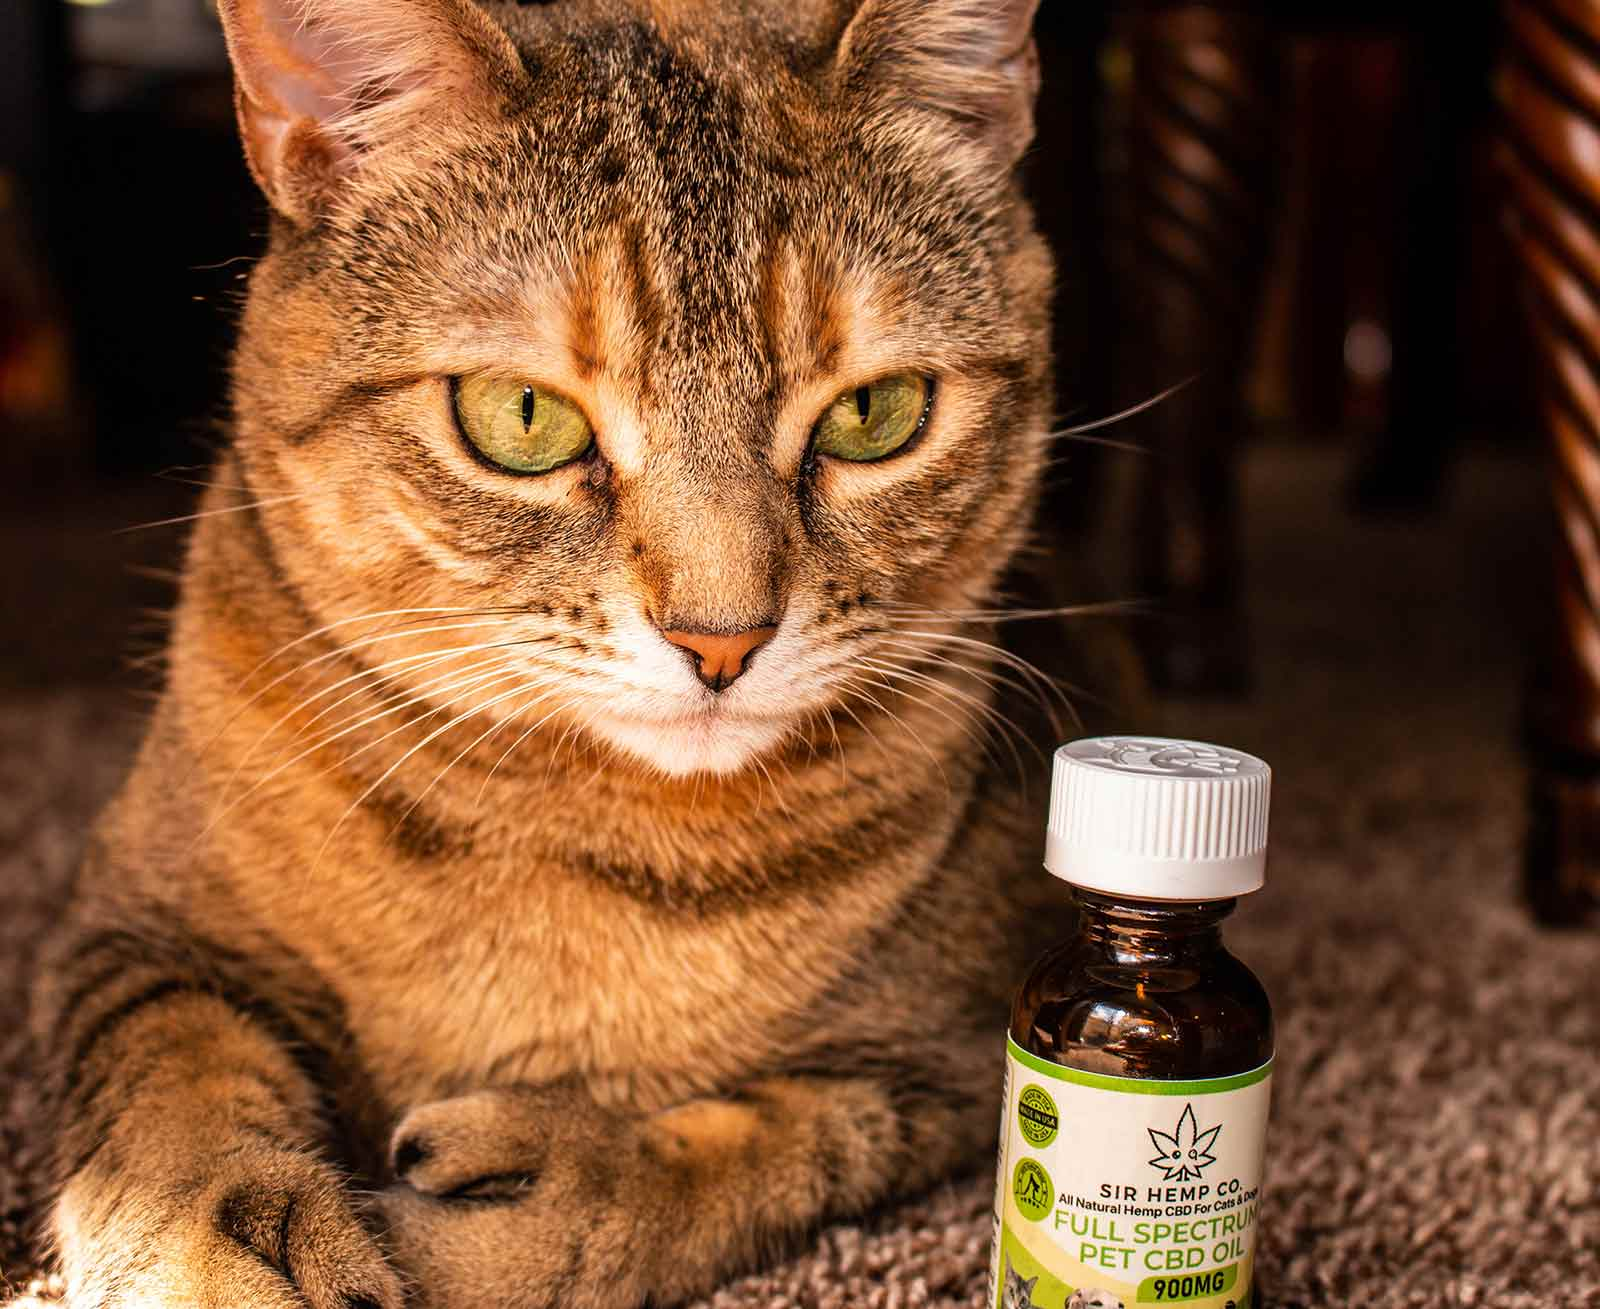 cbd for cats, cbd oil for cats, cbd for cats benefits, cbd for cats, anxiety